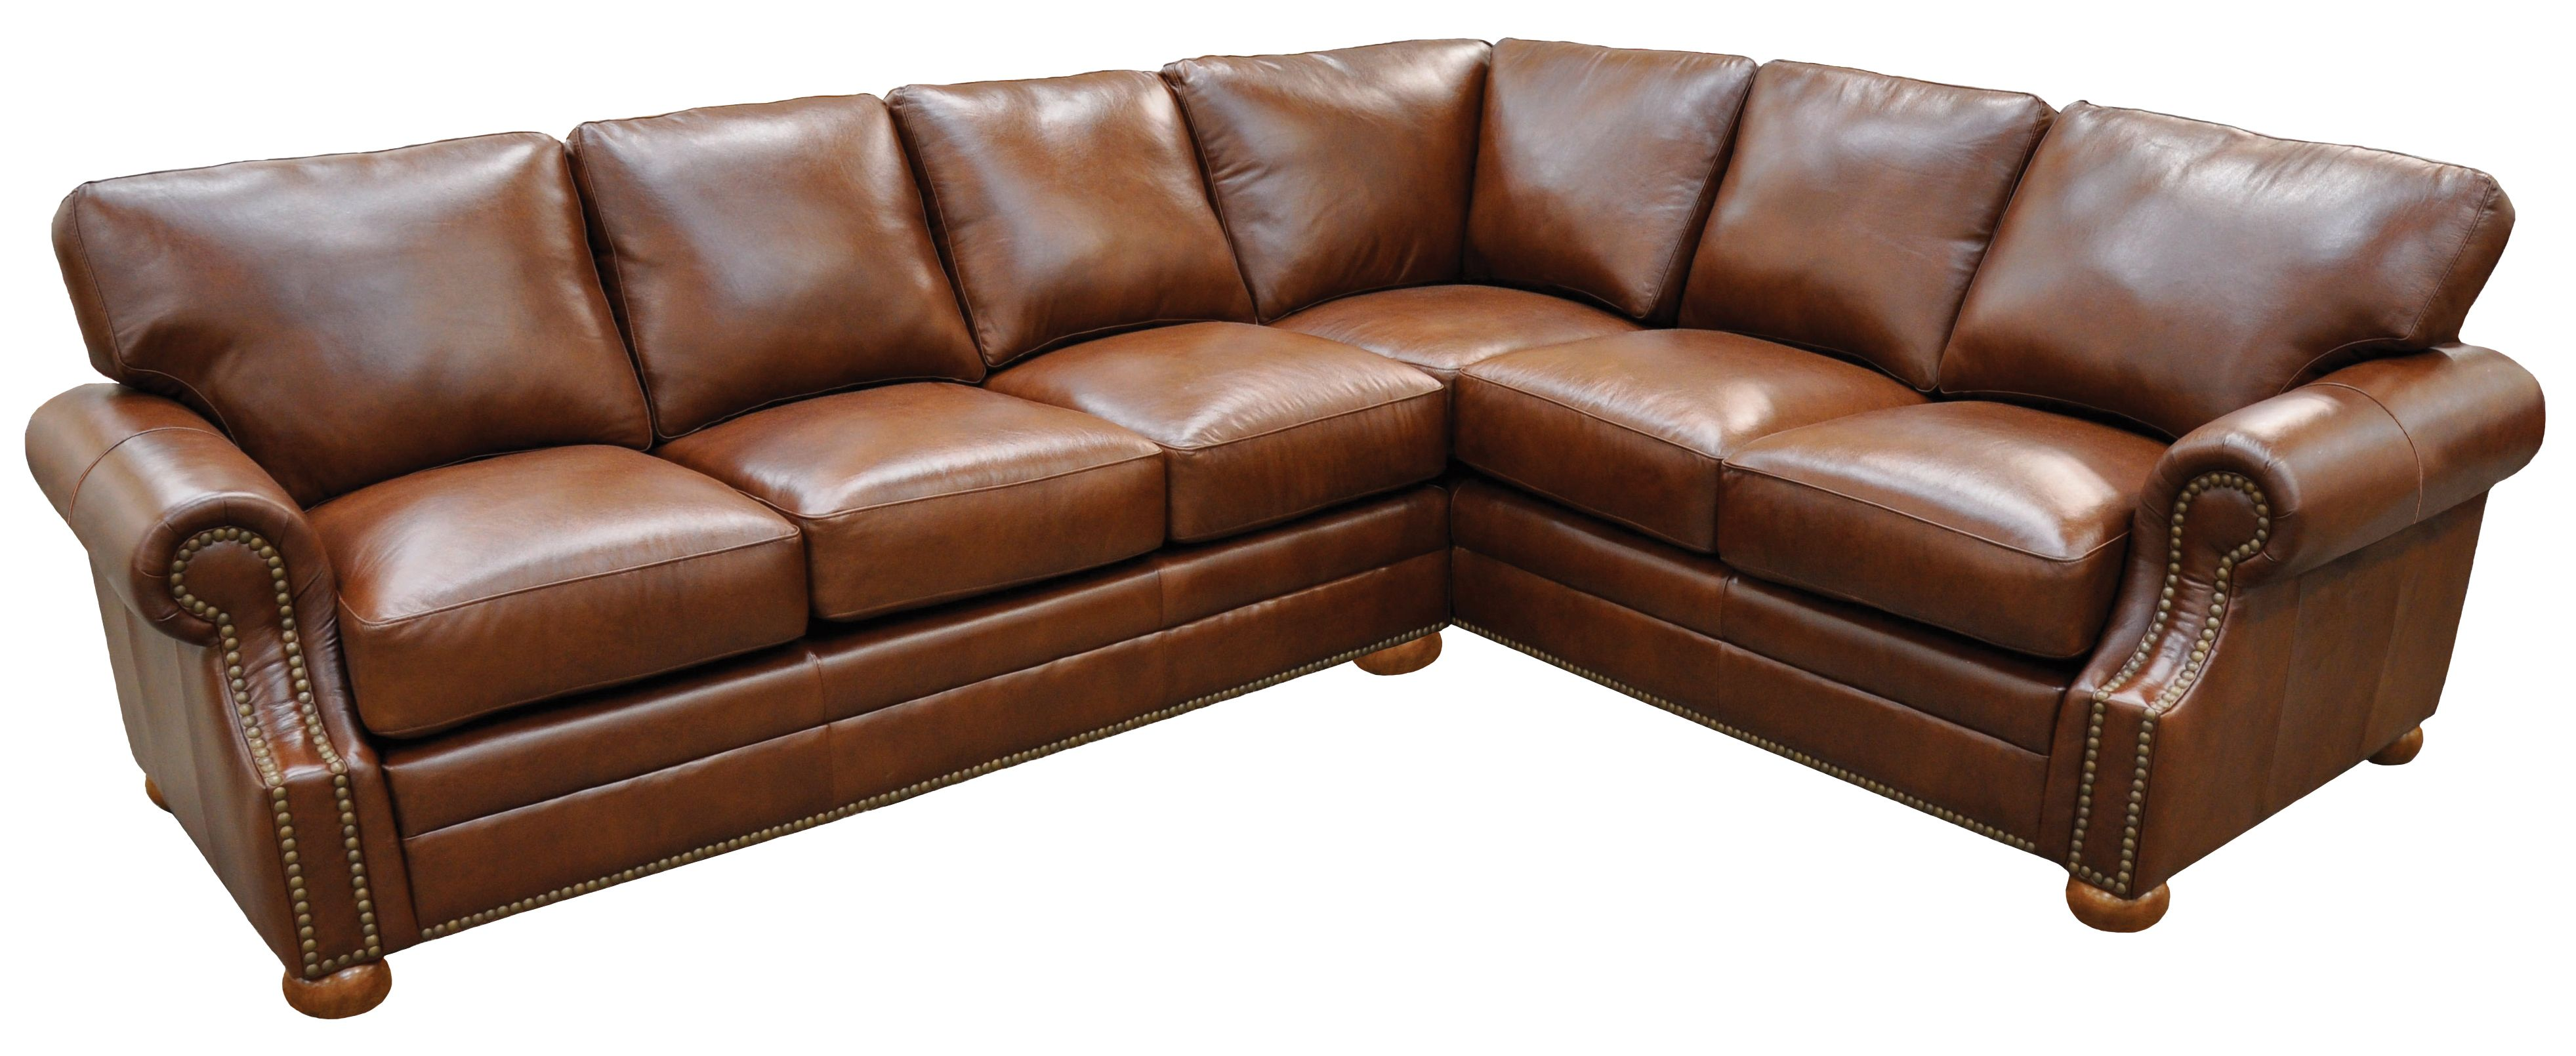 omnia bennett sectional Google Search Sectionals